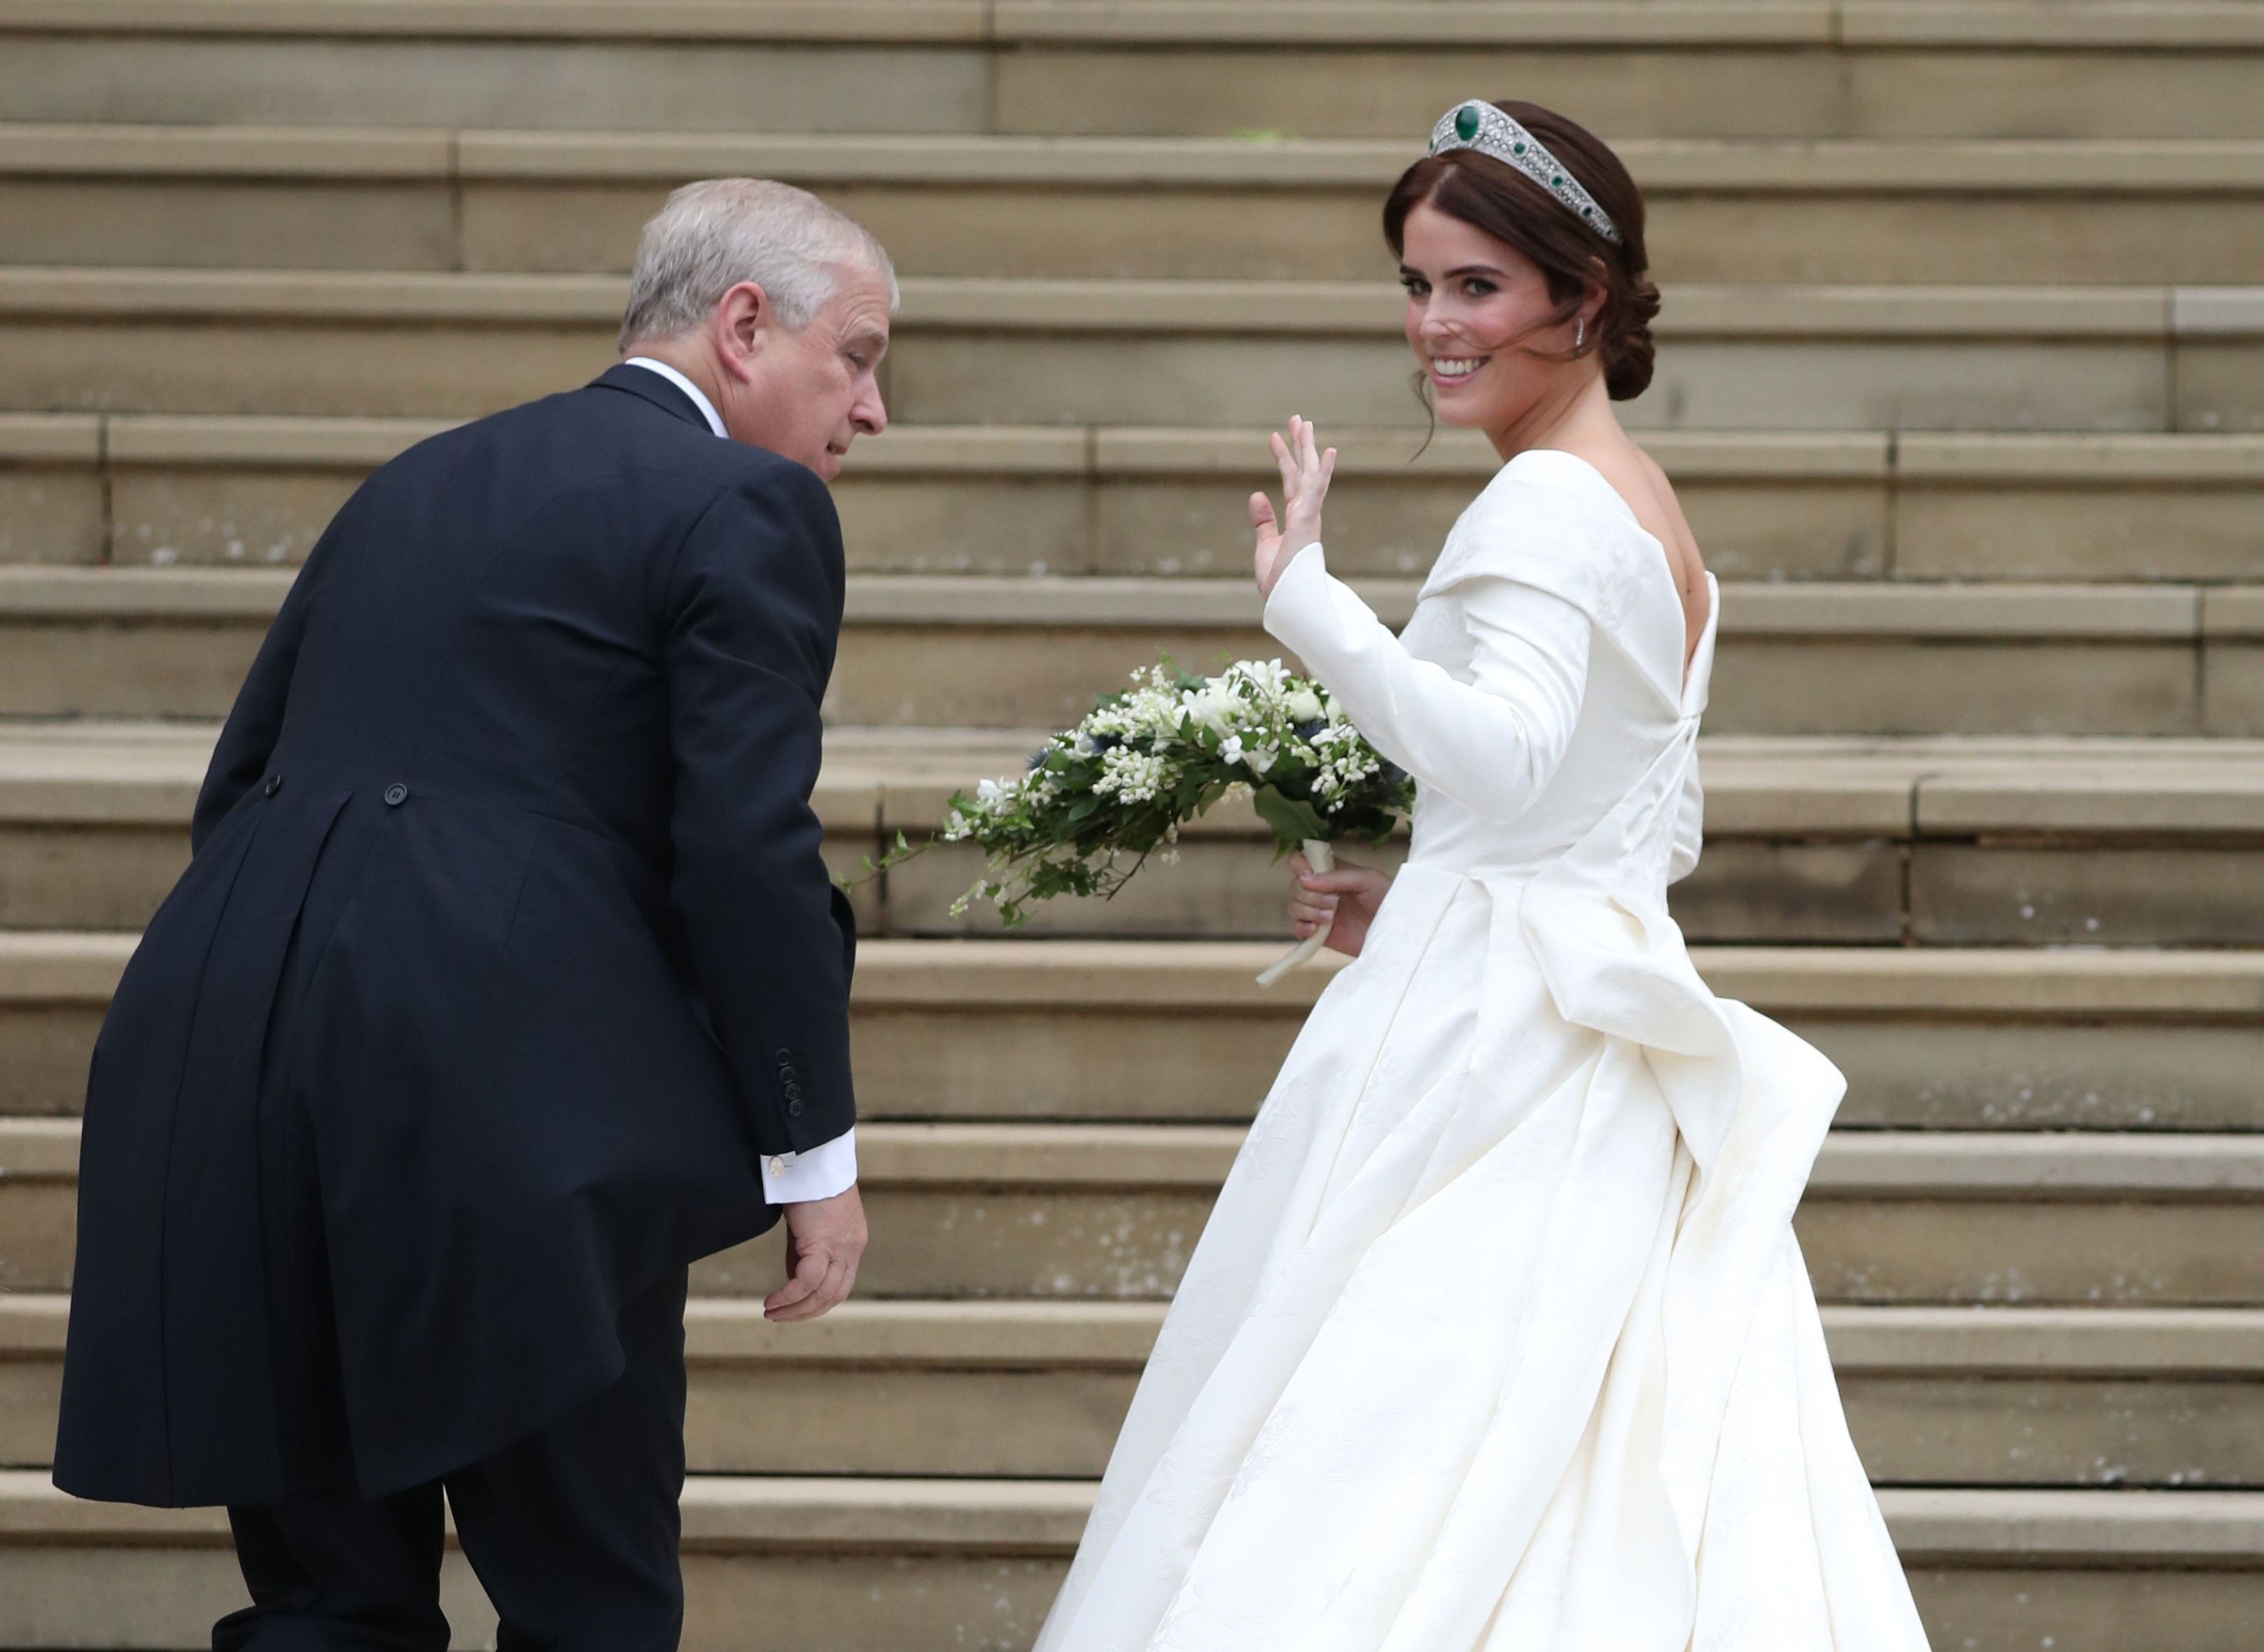 How Princess Eugenie's Wedding Differed From Meghan Markle's Larger-Than-Life Ceremony